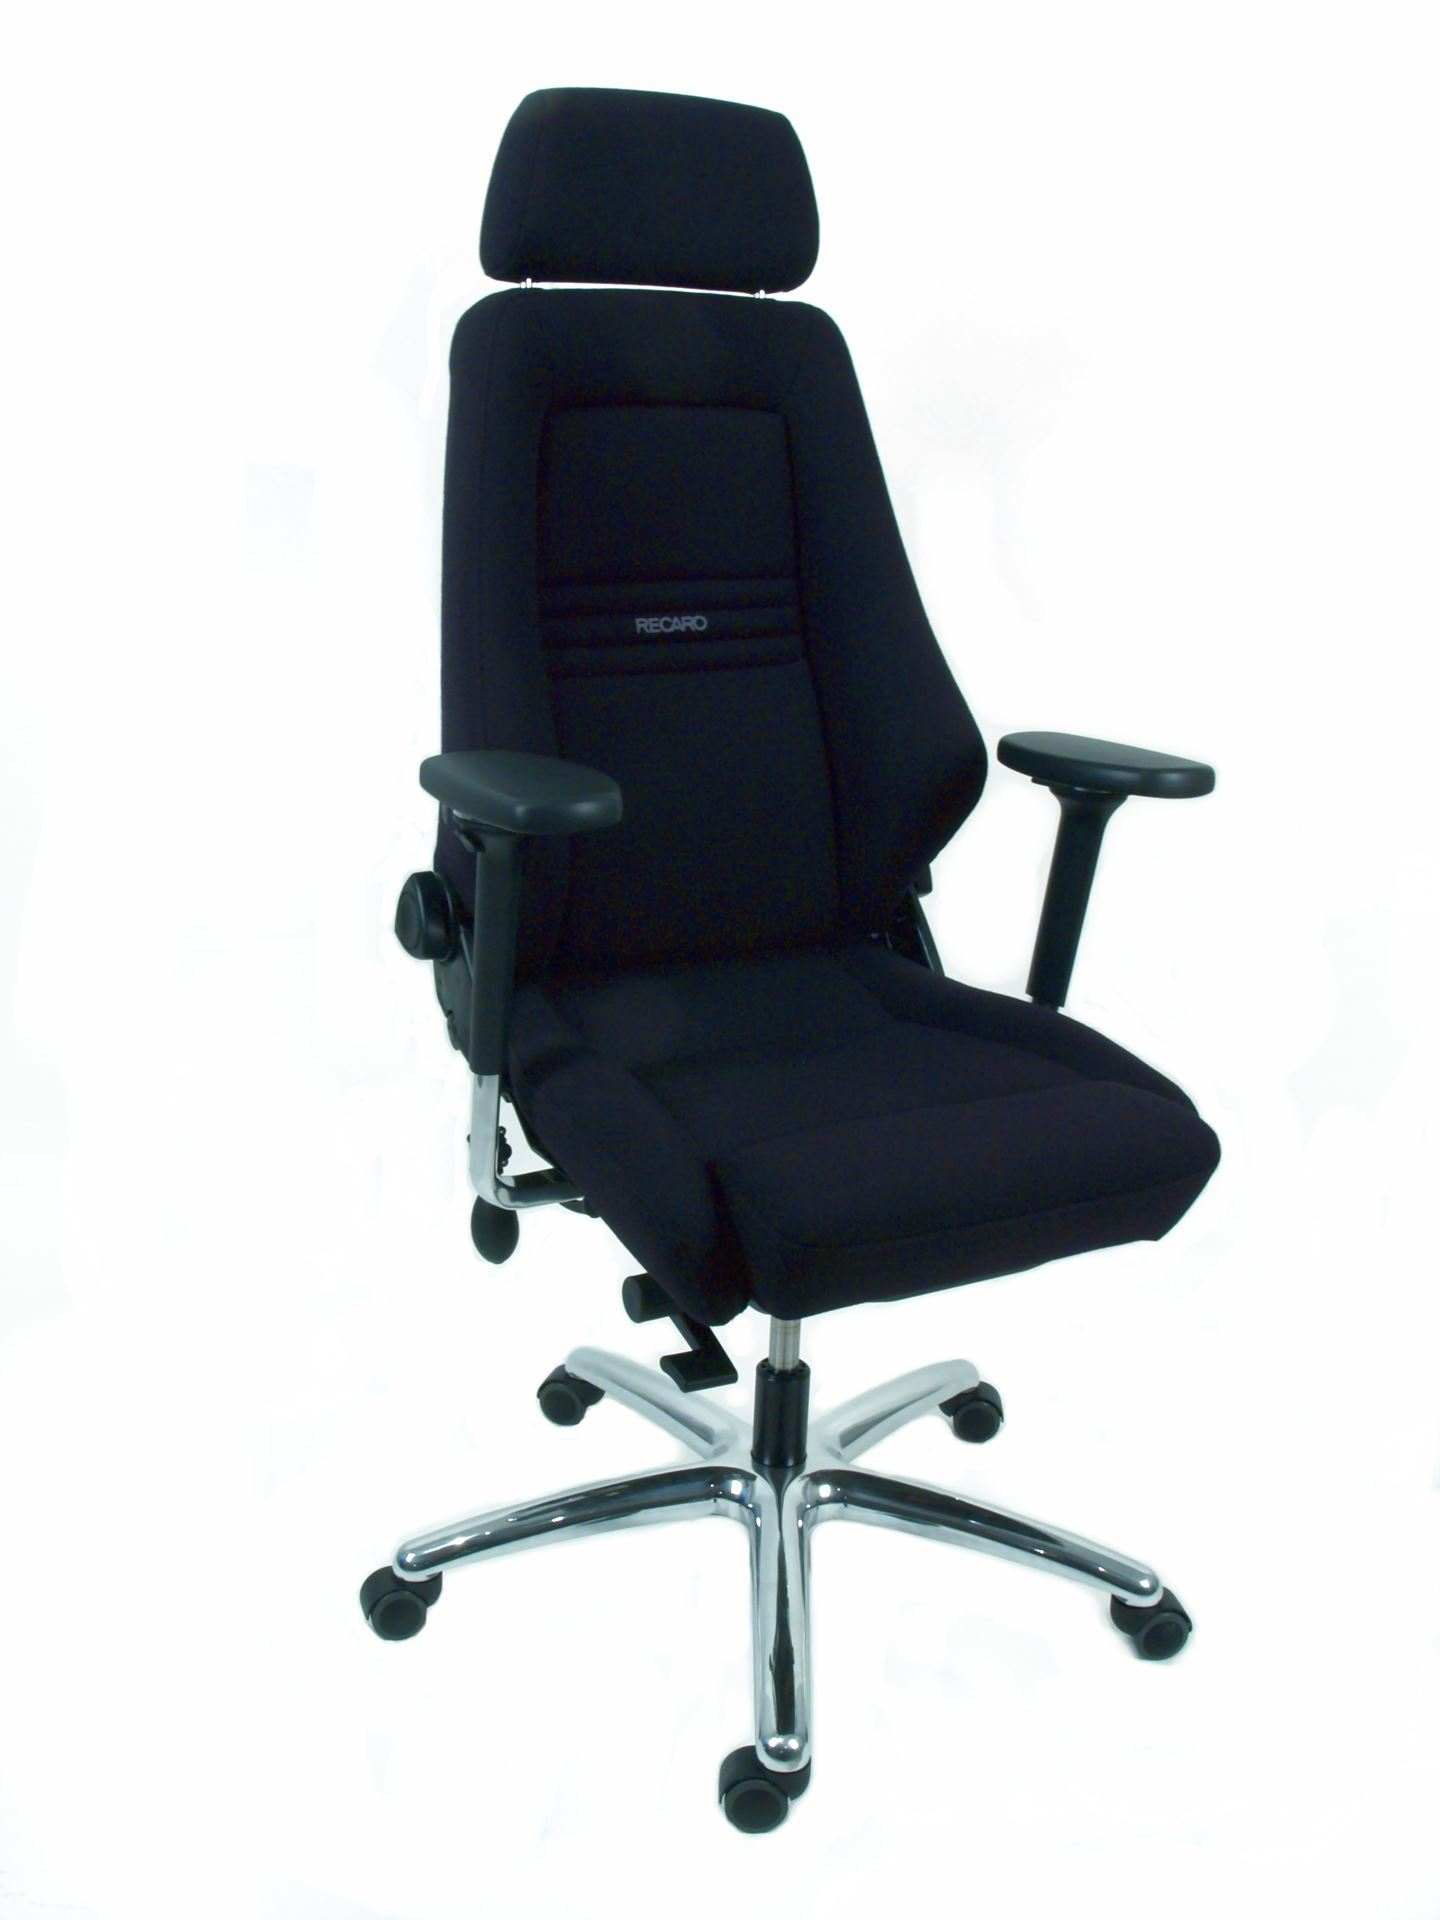 recaro office chair uk lace covers capital seating and vision accessories for picture of specialist